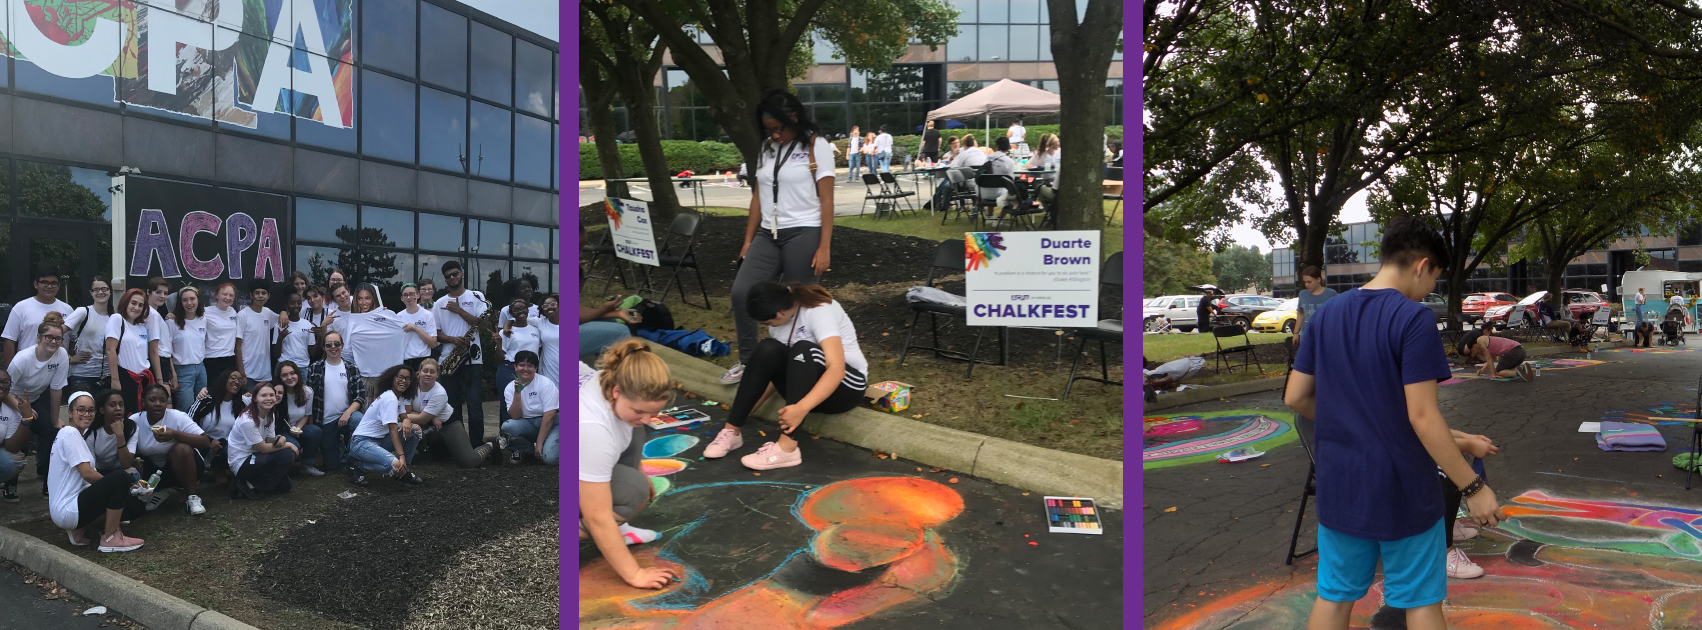 Chalkfest 2019 Artwork